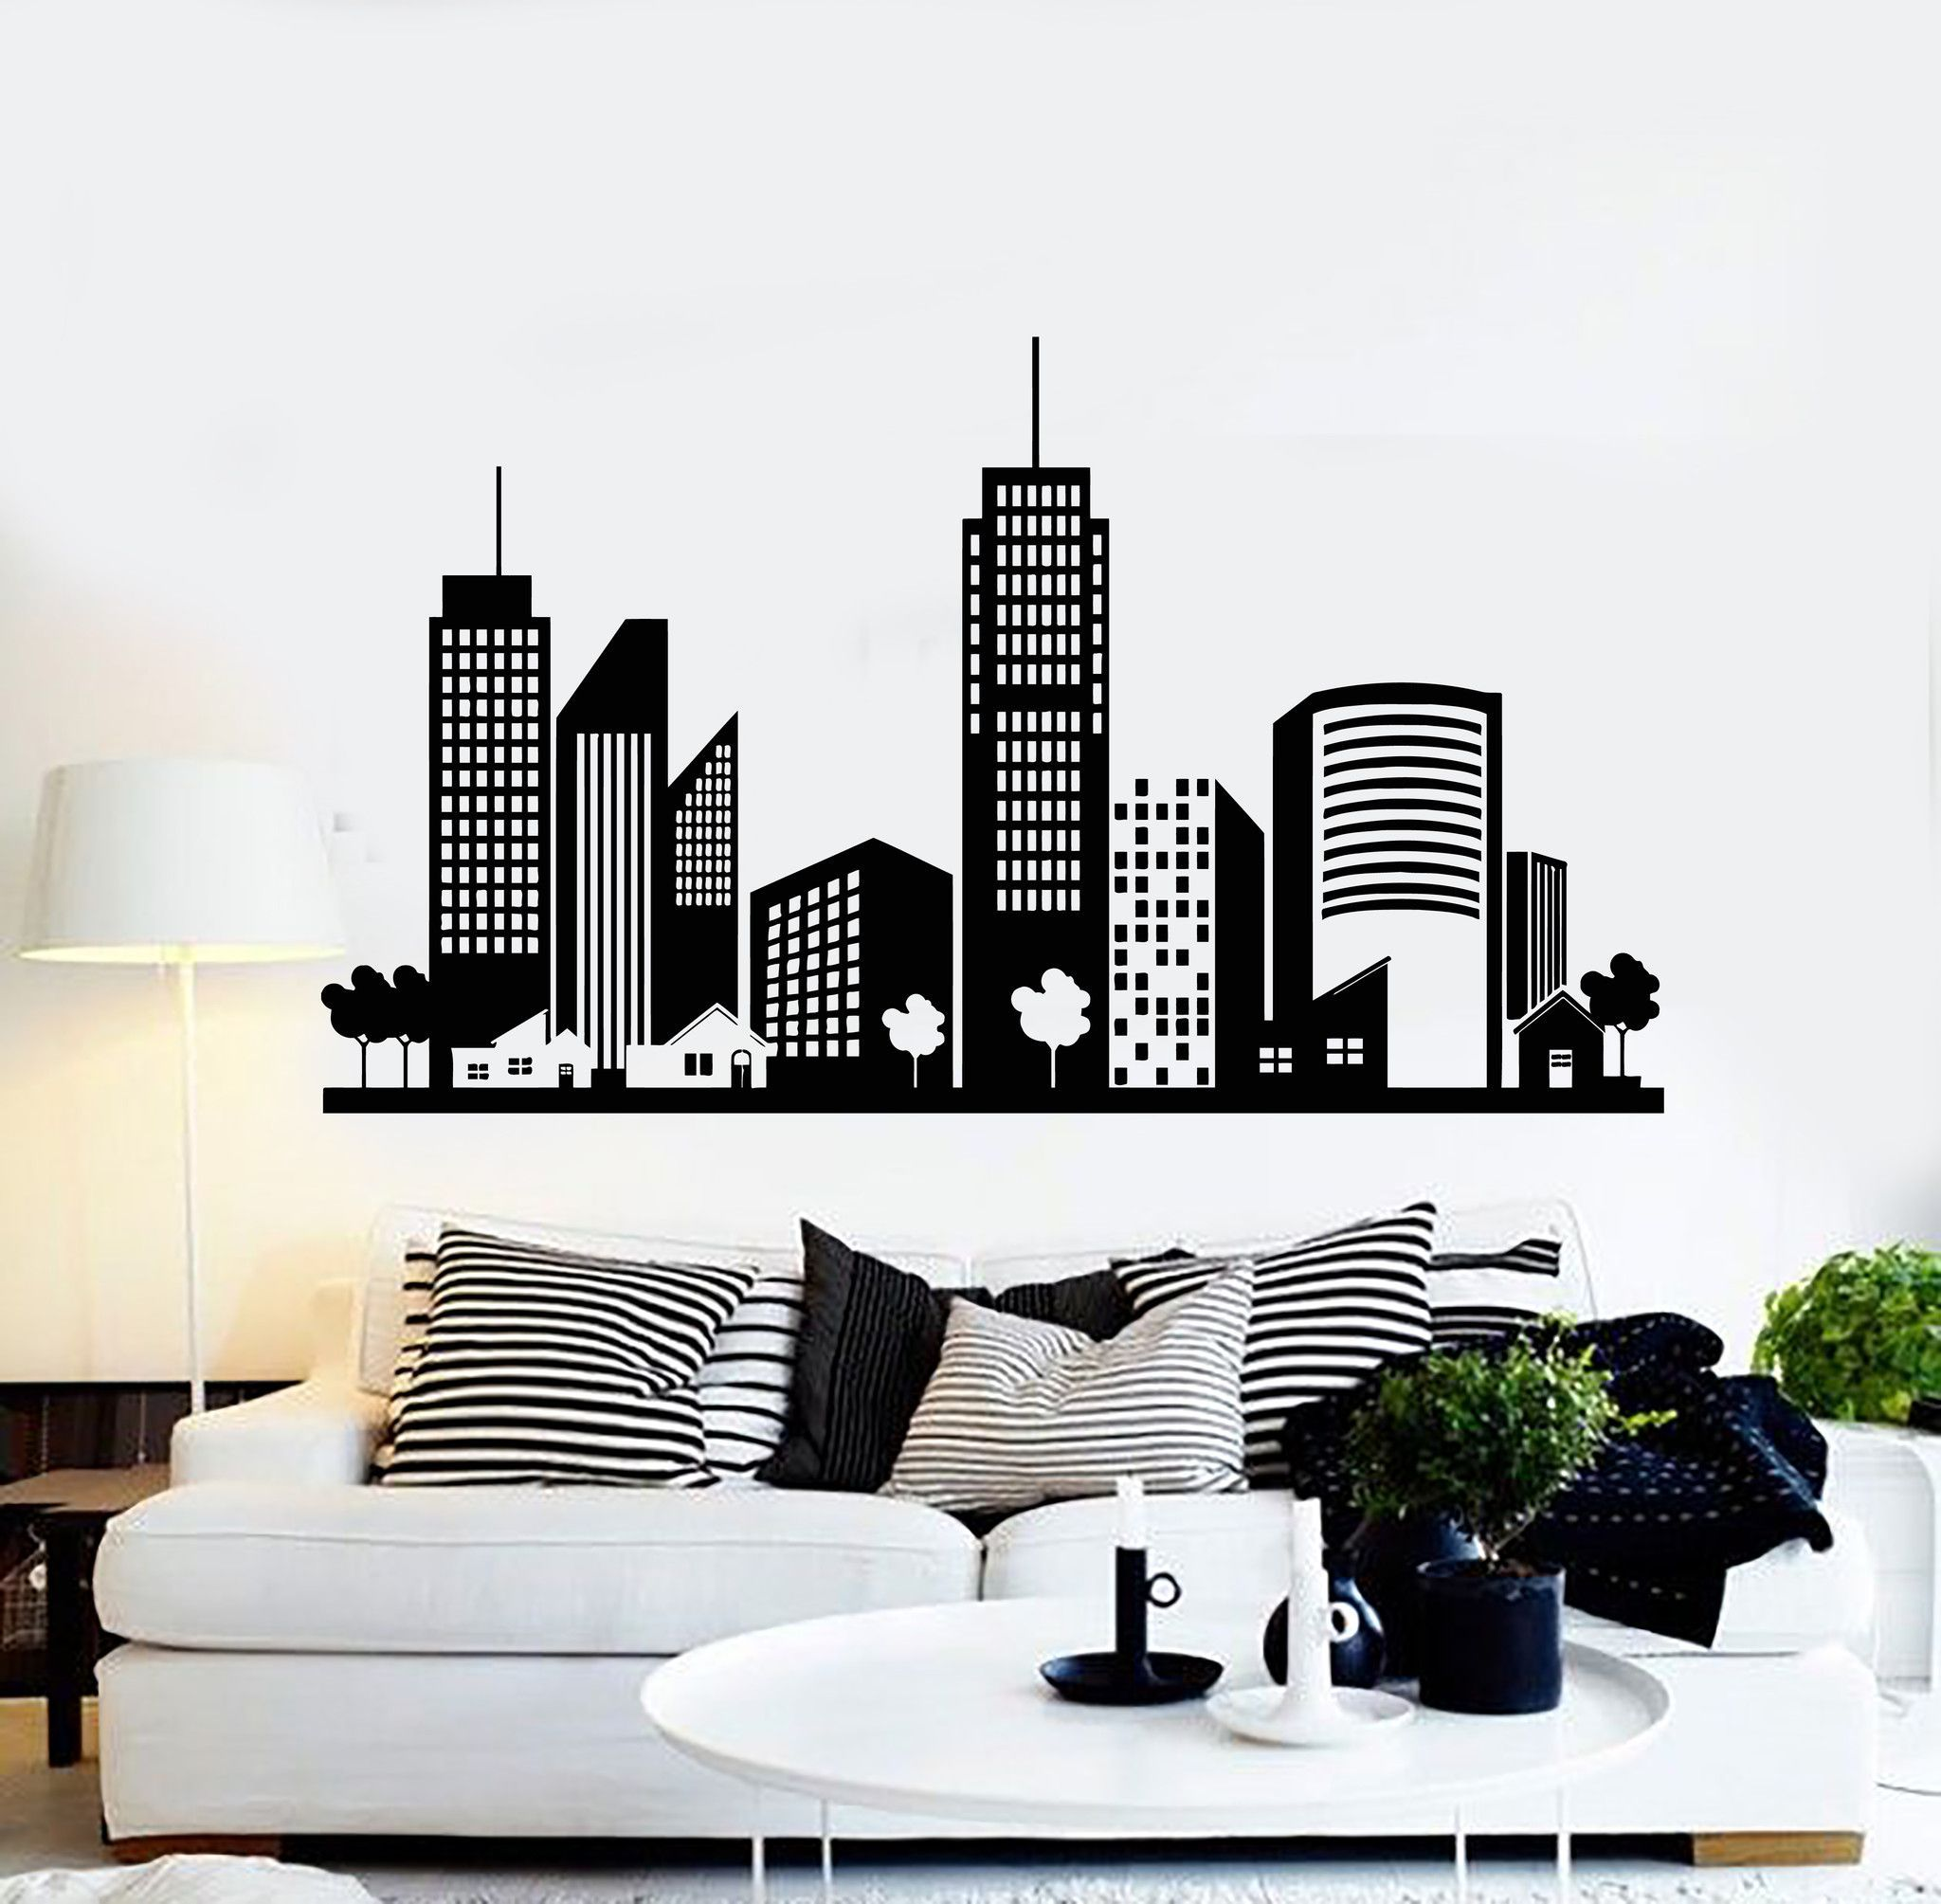 vinyl wall decal city buildings house interior stickers on wall stickers for home id=92195